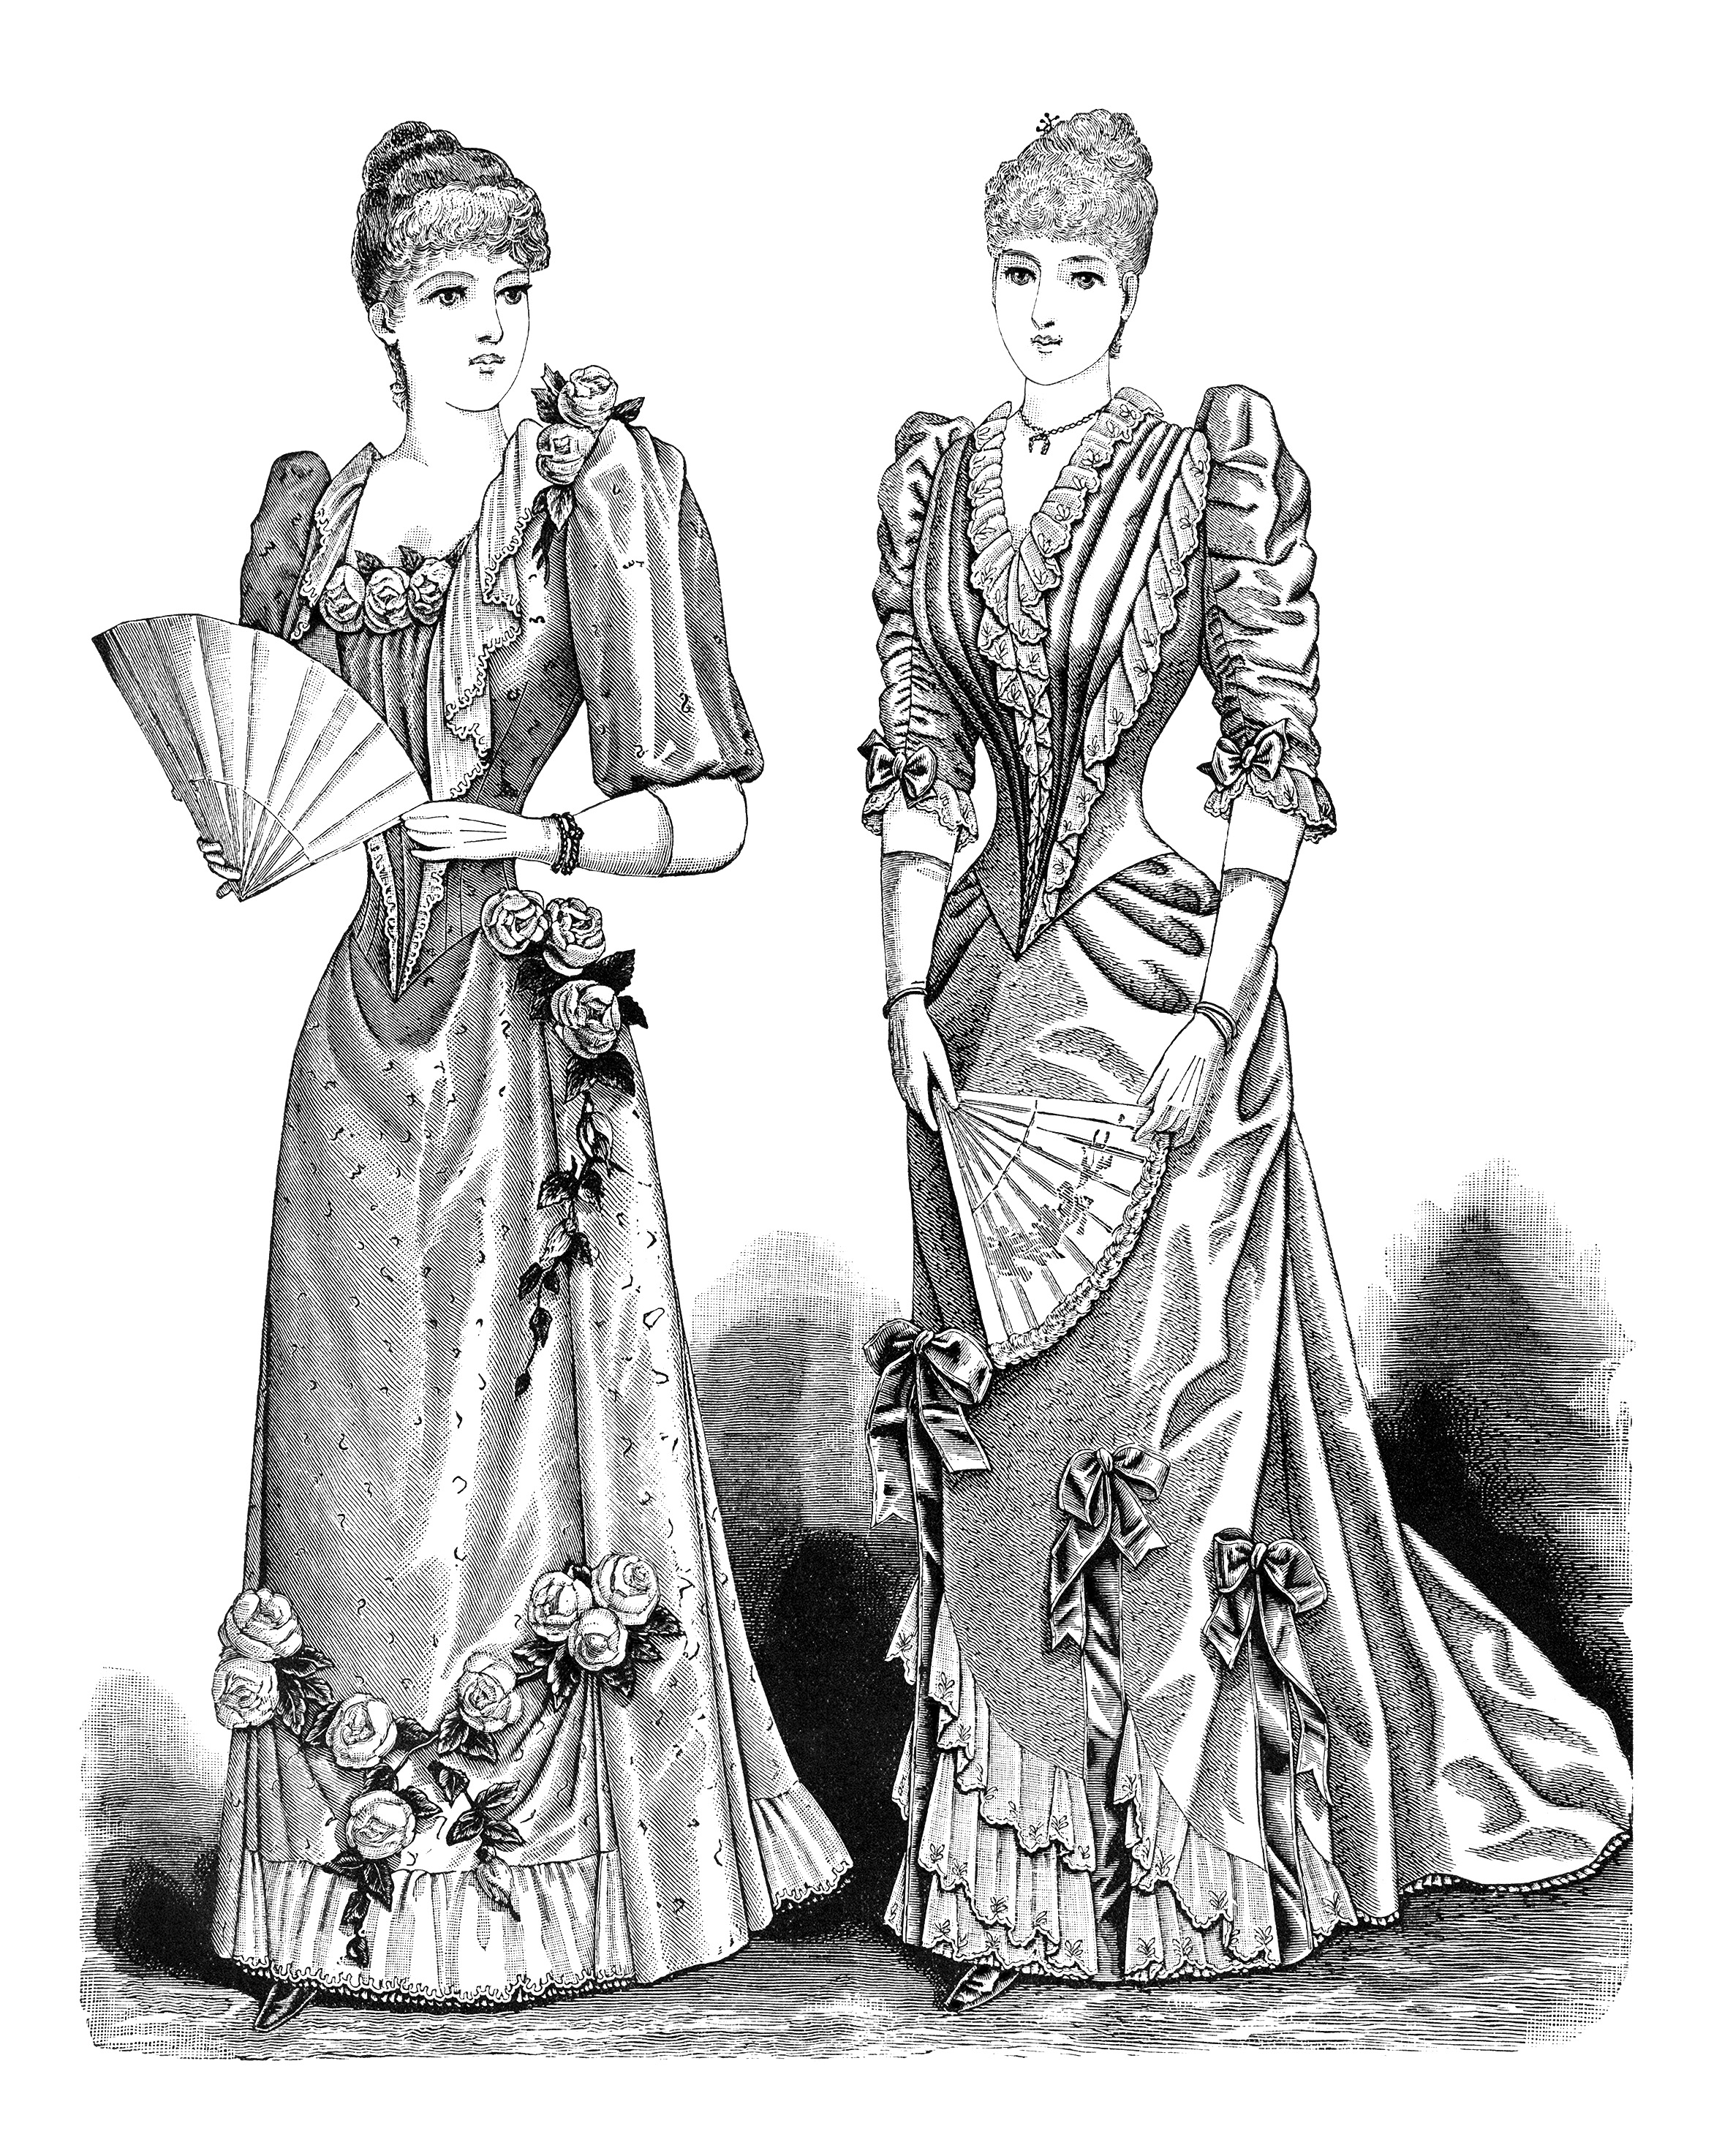 Victorian lady, black and white graphics, Edwardian ladies fashion.